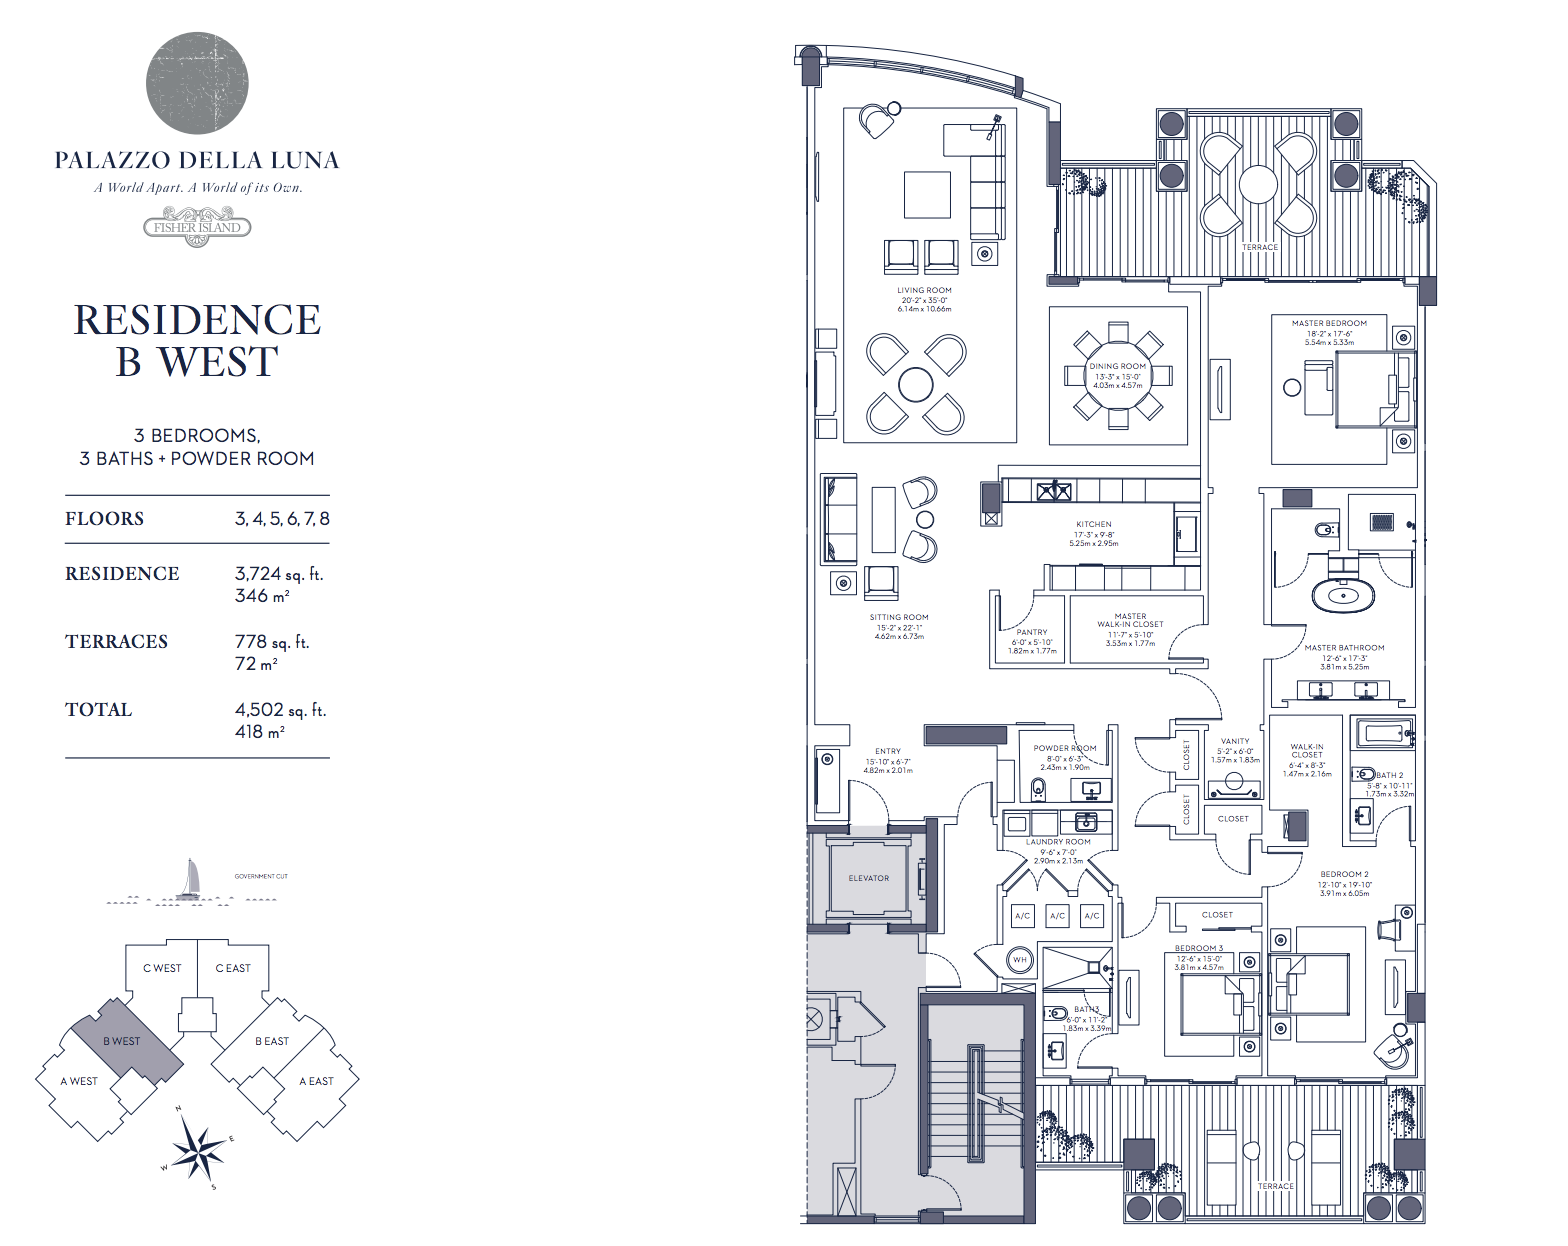 Palazzo della Luna| Residence B West Floors 3, 4,5,6,7 and 8